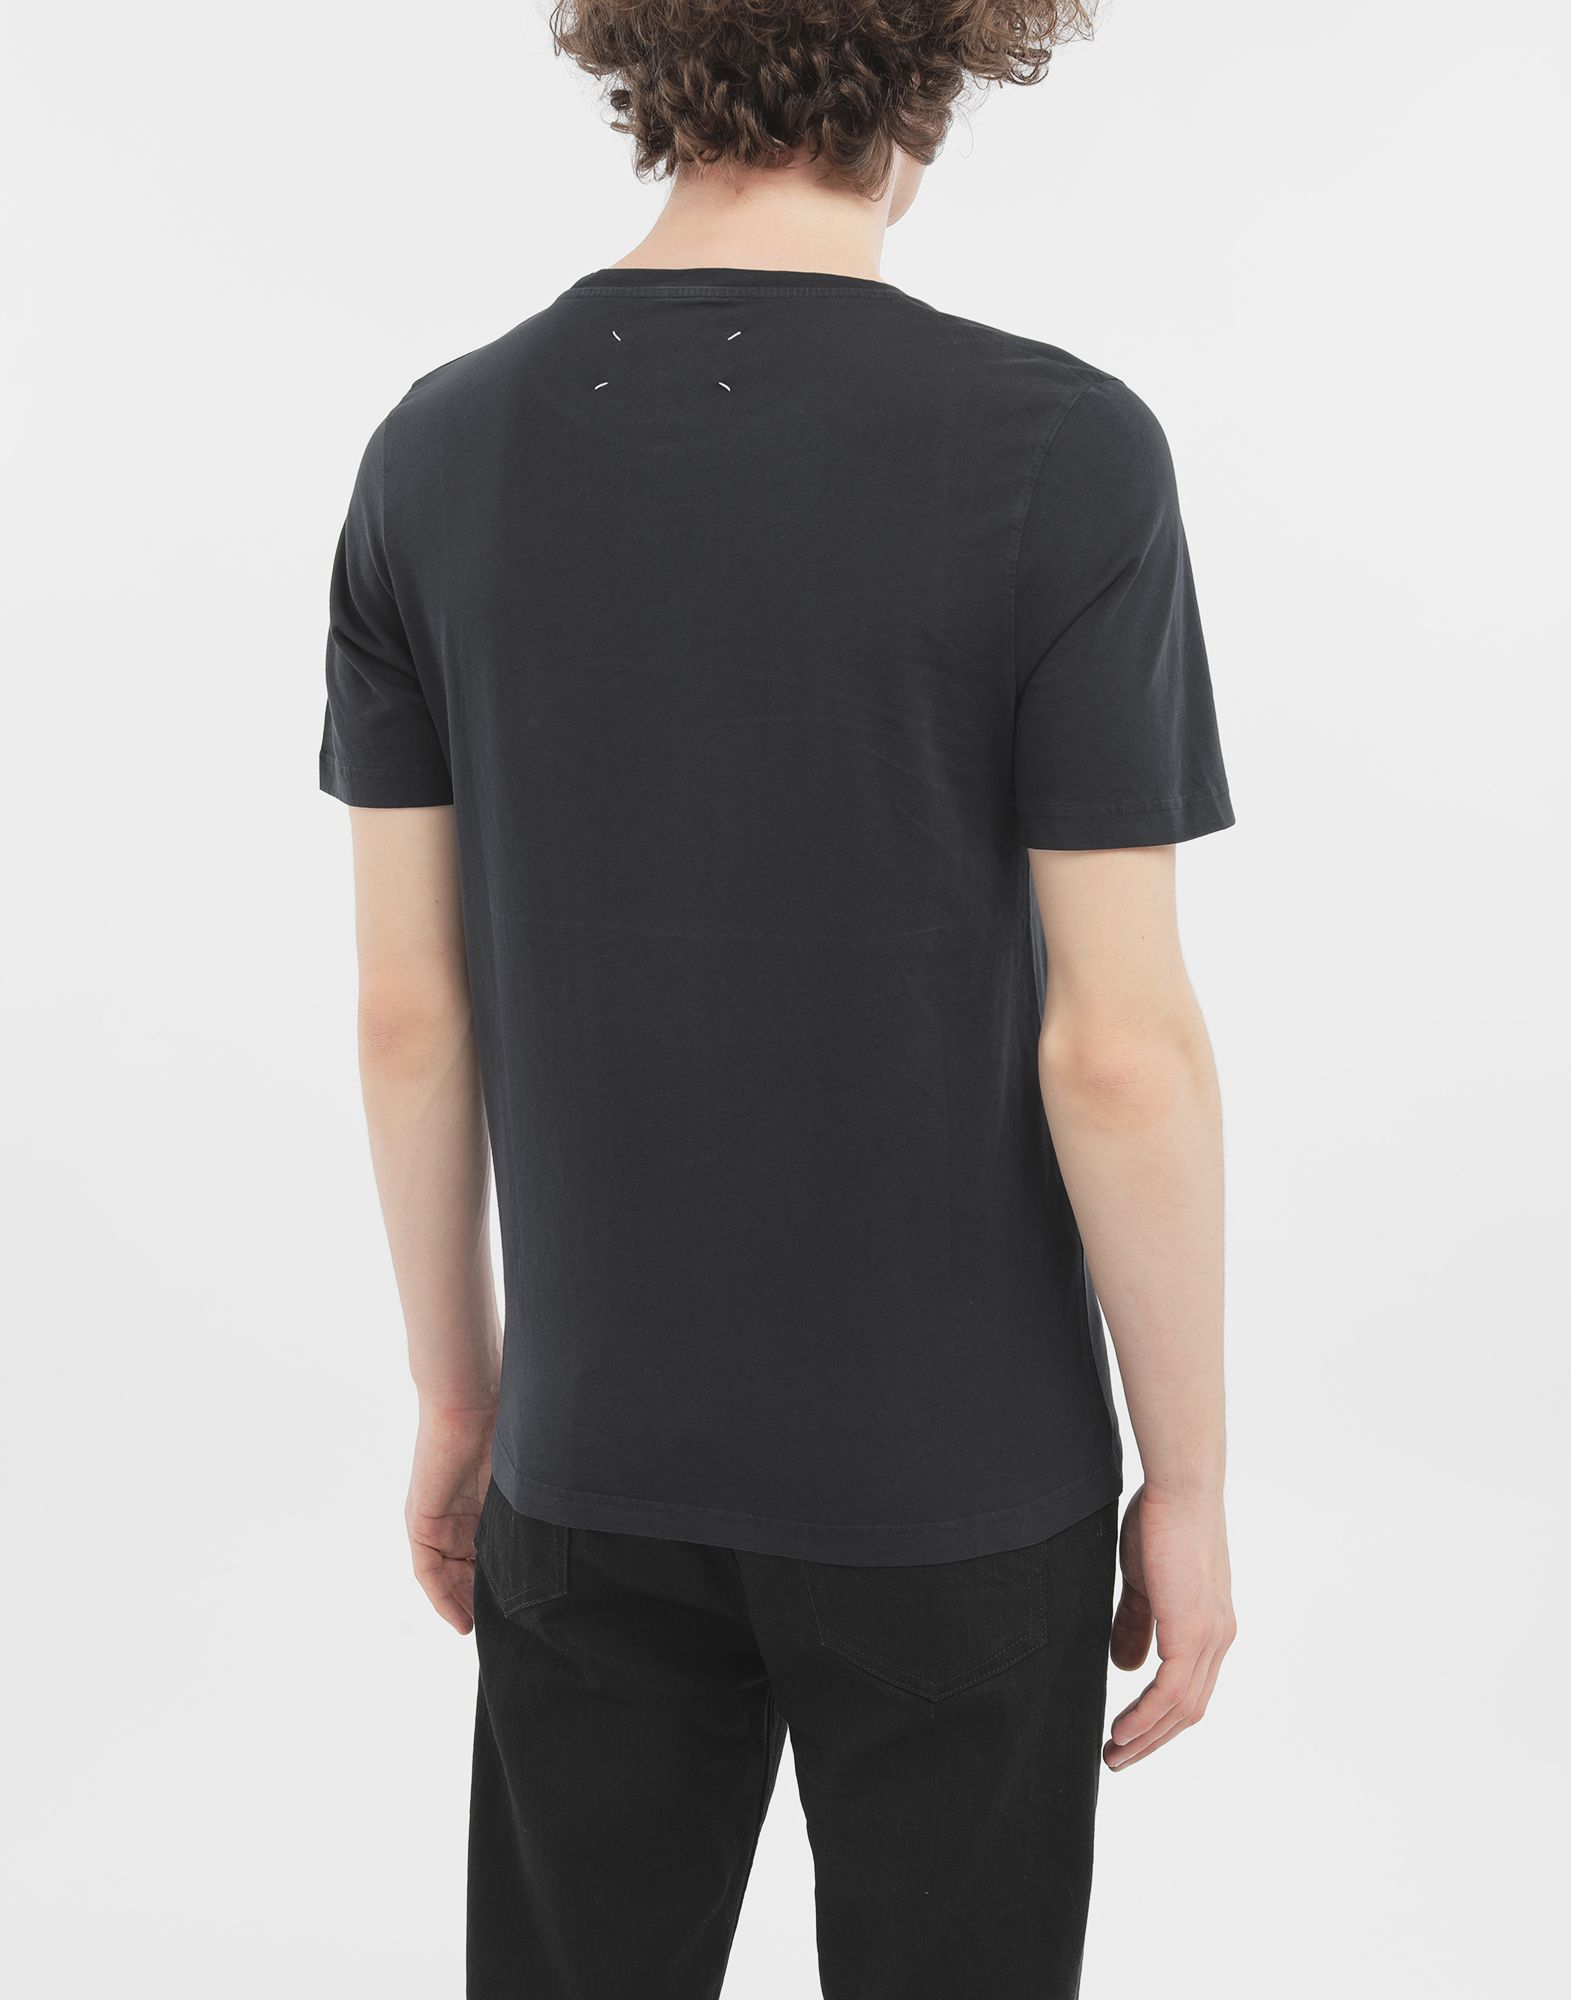 MAISON MARGIELA Cotton tee-shirt Short sleeve t-shirt Man e